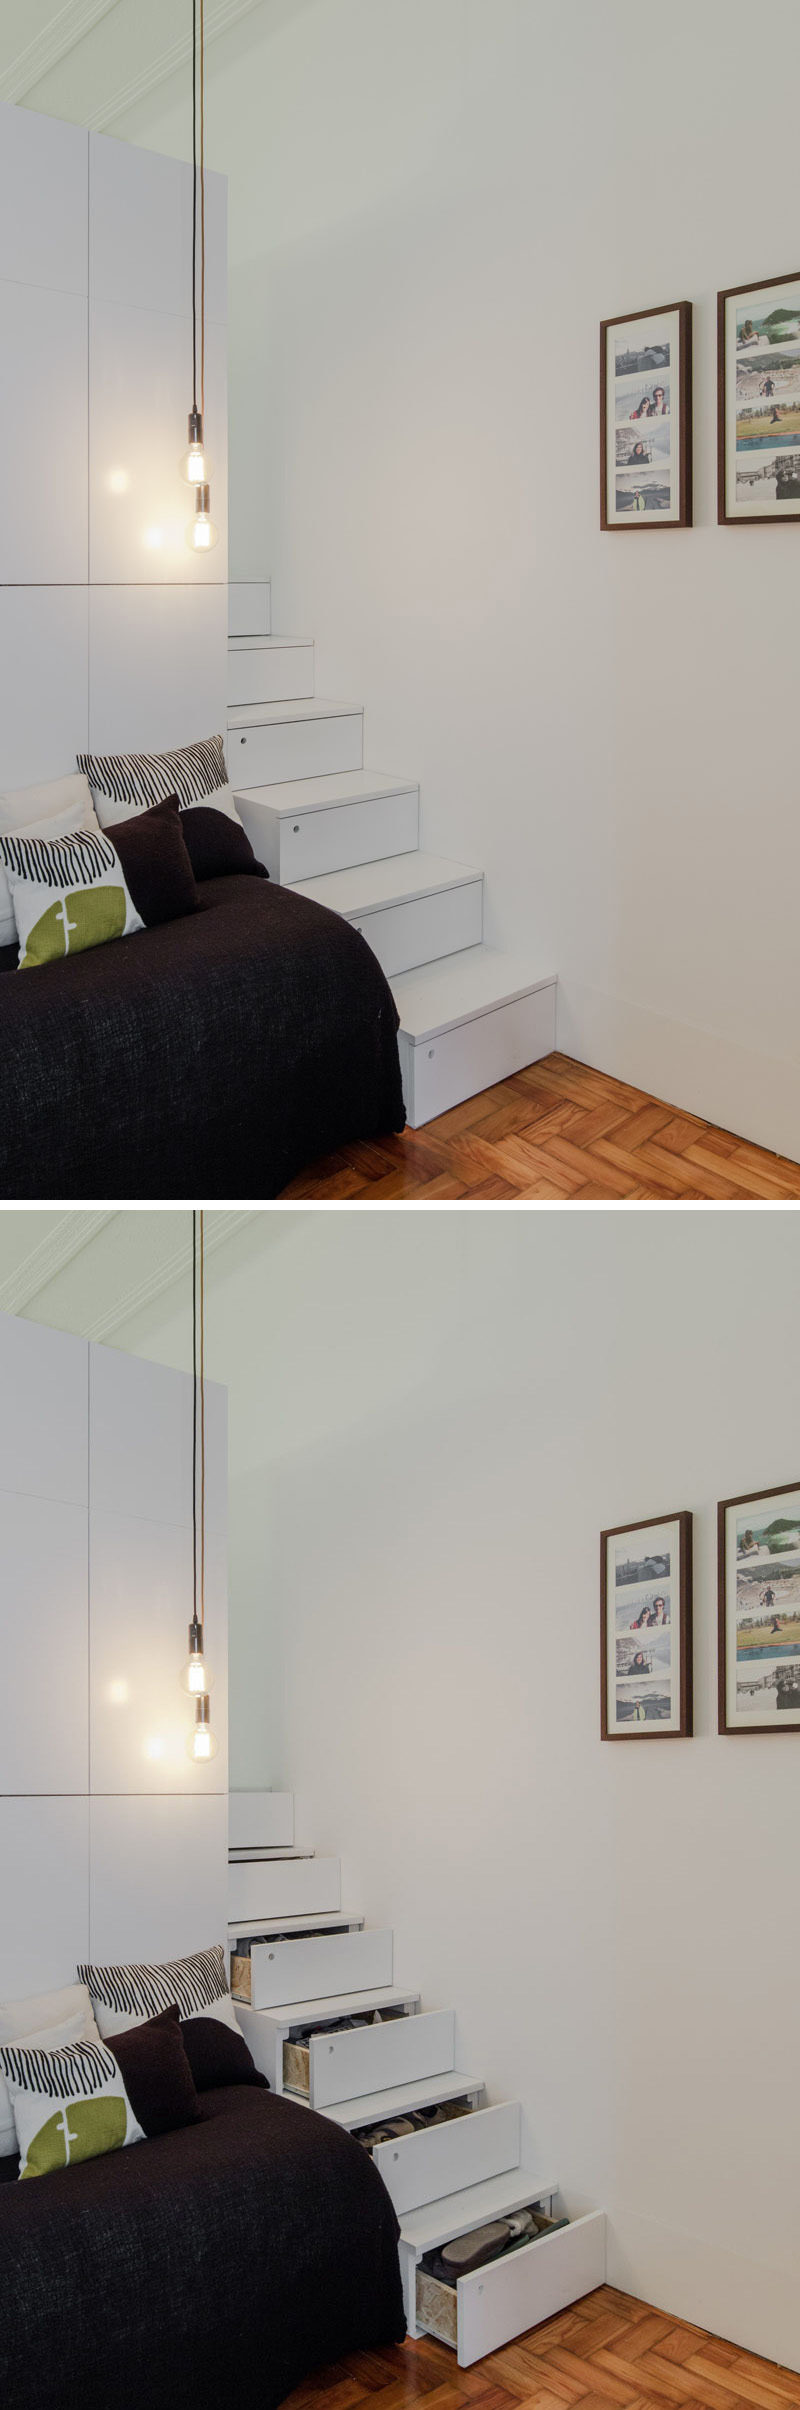 In this small apartment, a set of white stairs sits next to a pull out couch/bed combo, with each step able to be opened as a drawer, providing extra hidden storage.